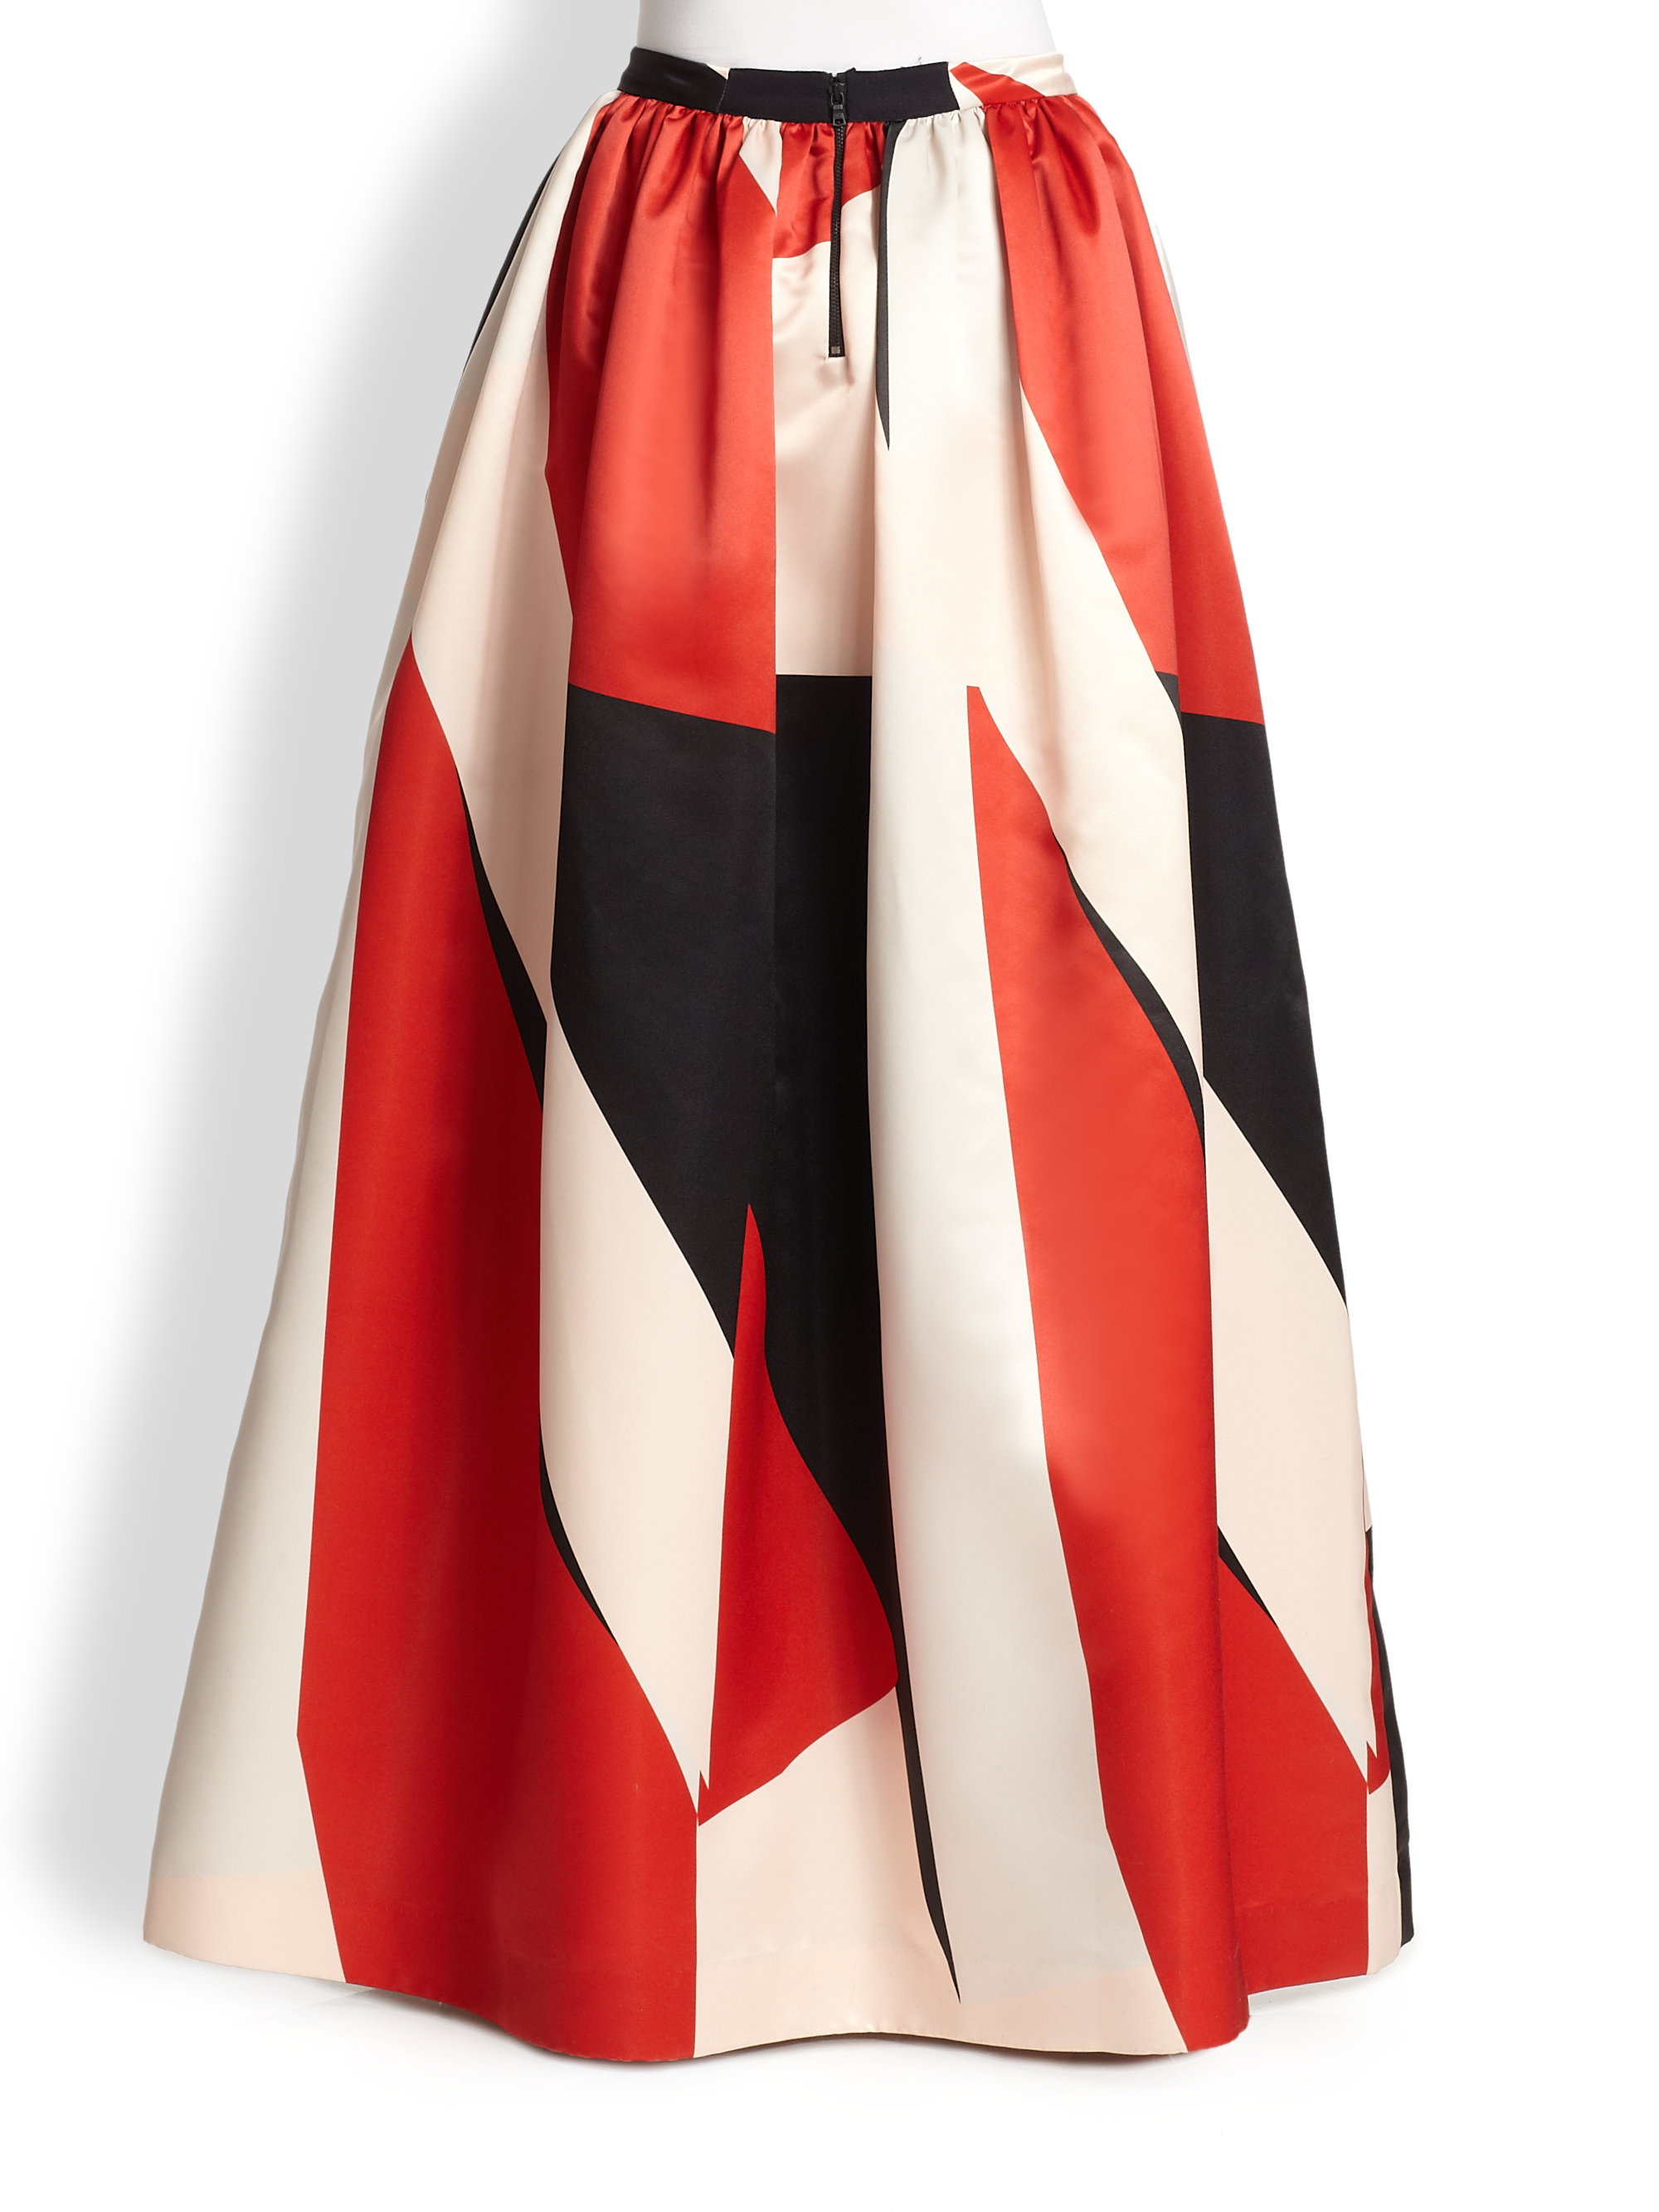 Alice   olivia Abella Long Flared Skirt in Red   Lyst